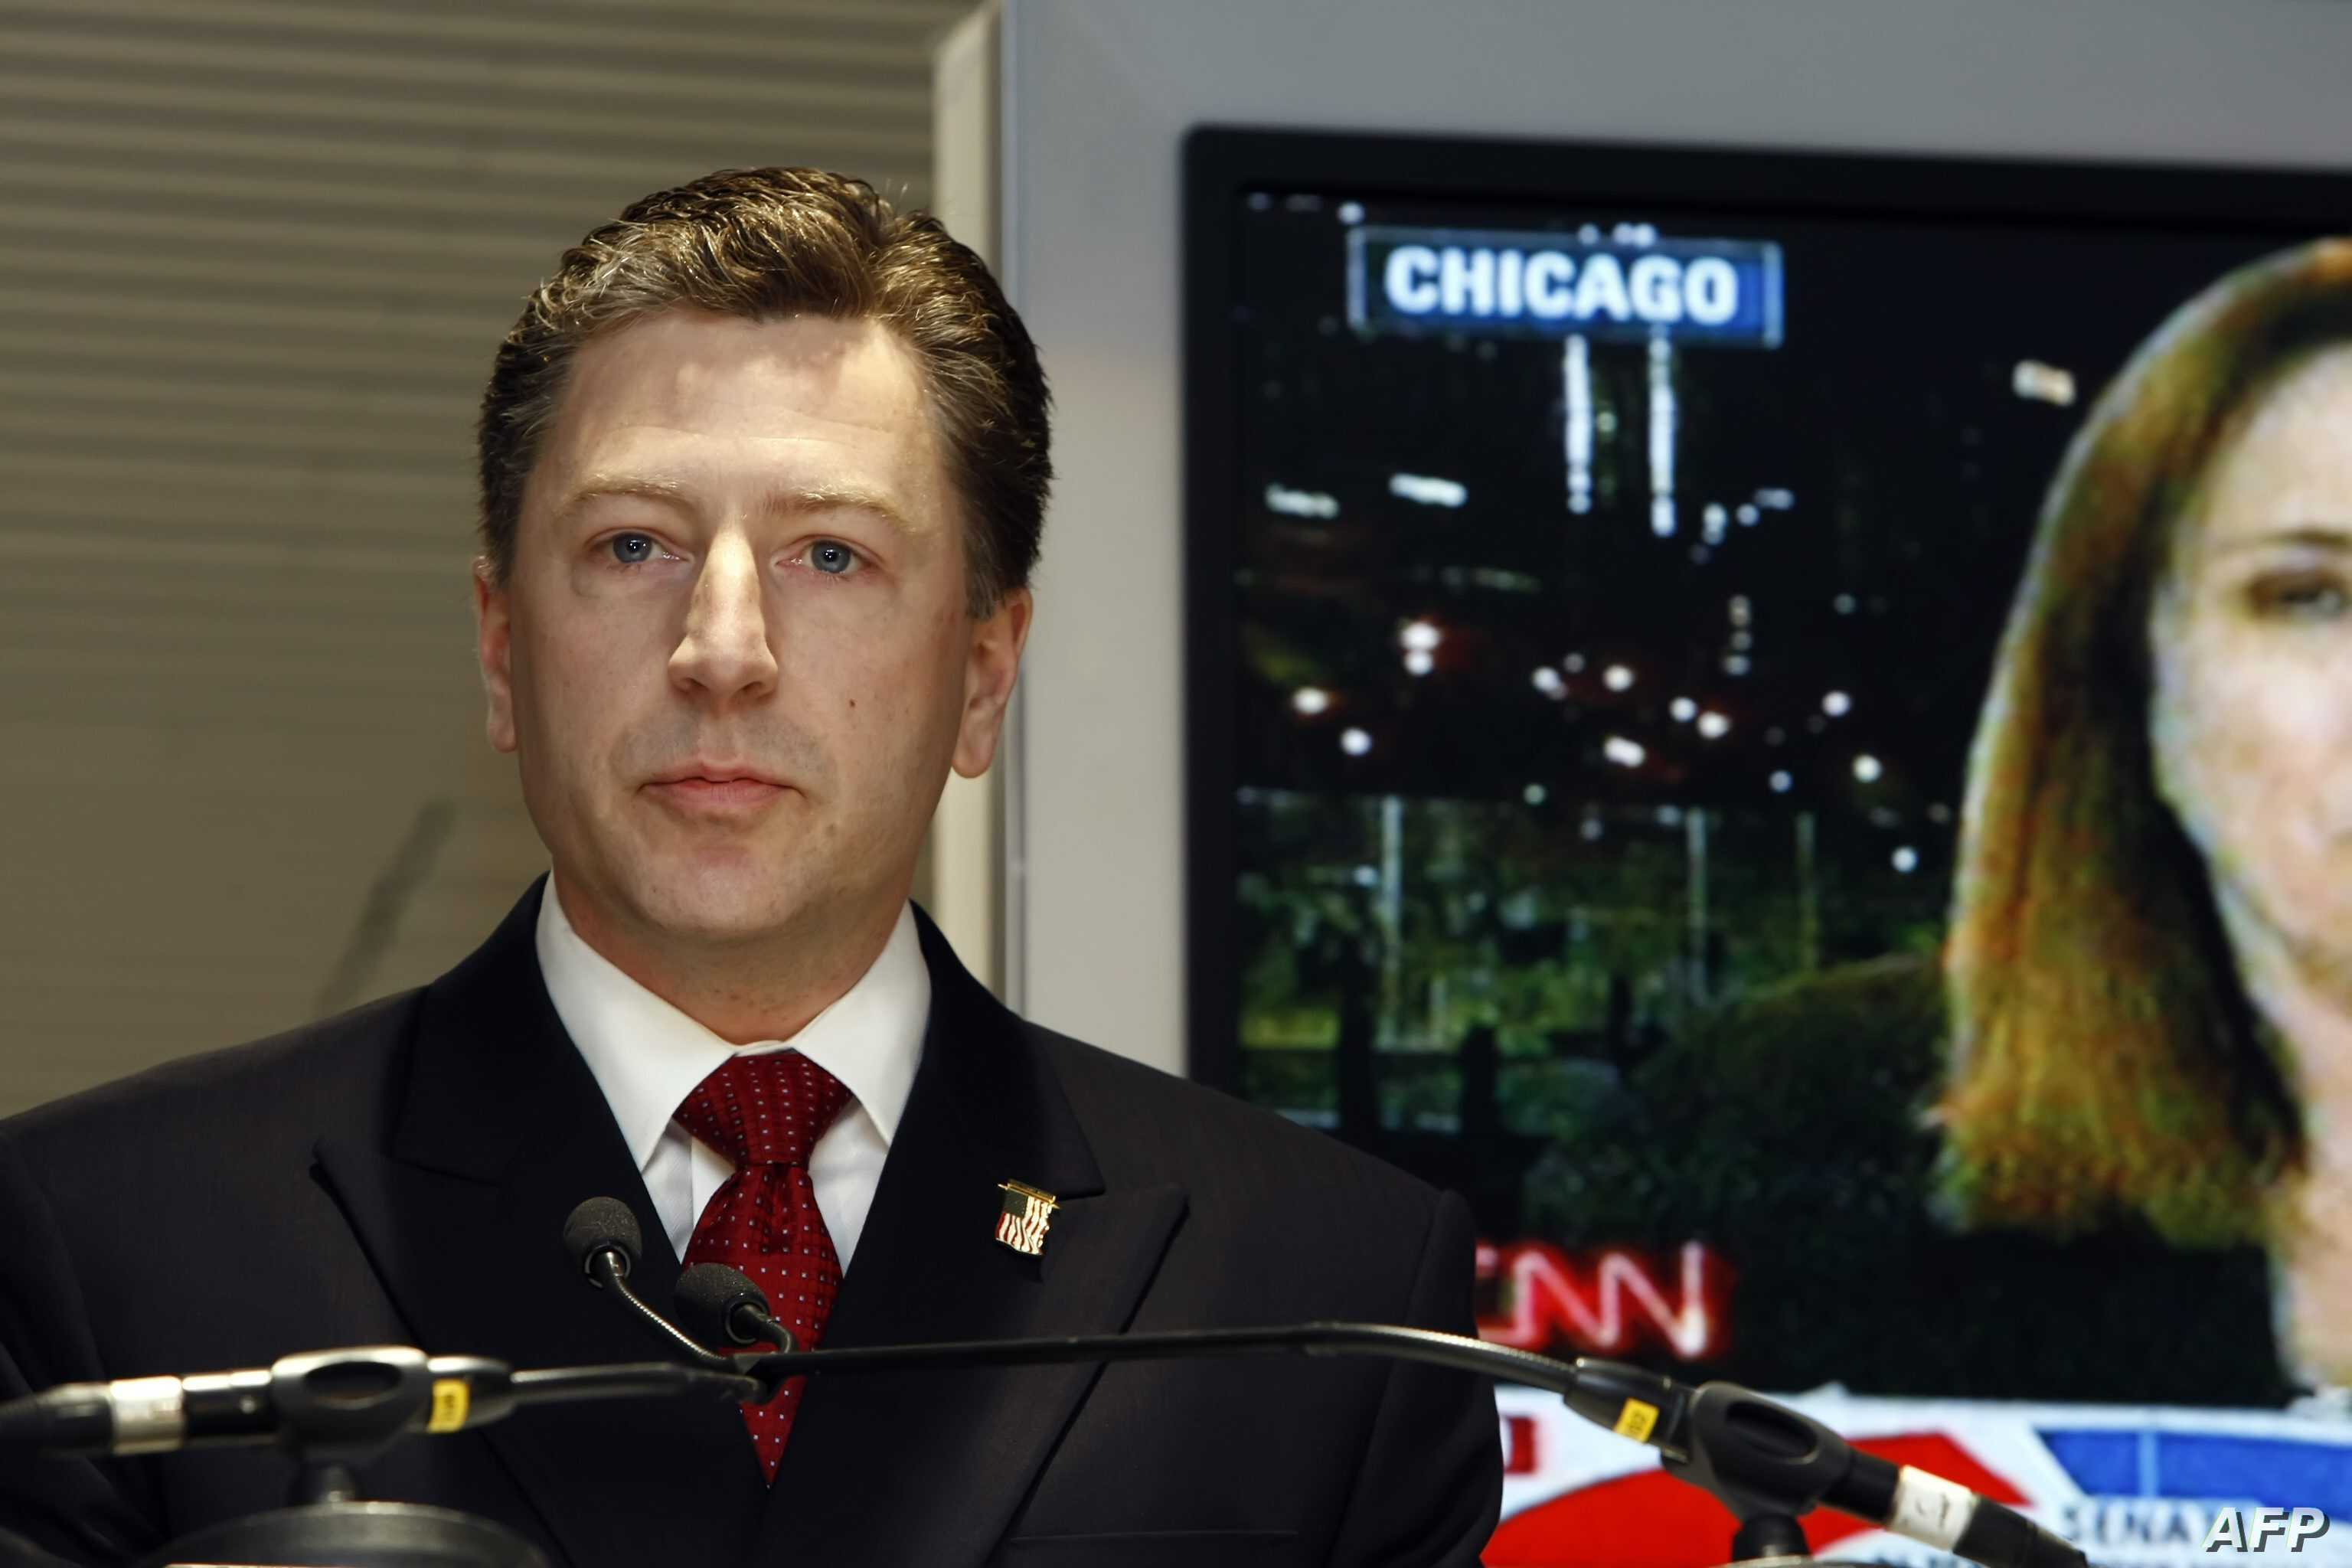 Former U.S. permanent representative to NATO Kurt Volker is shown in Brussels, Nov. 5, 2008.